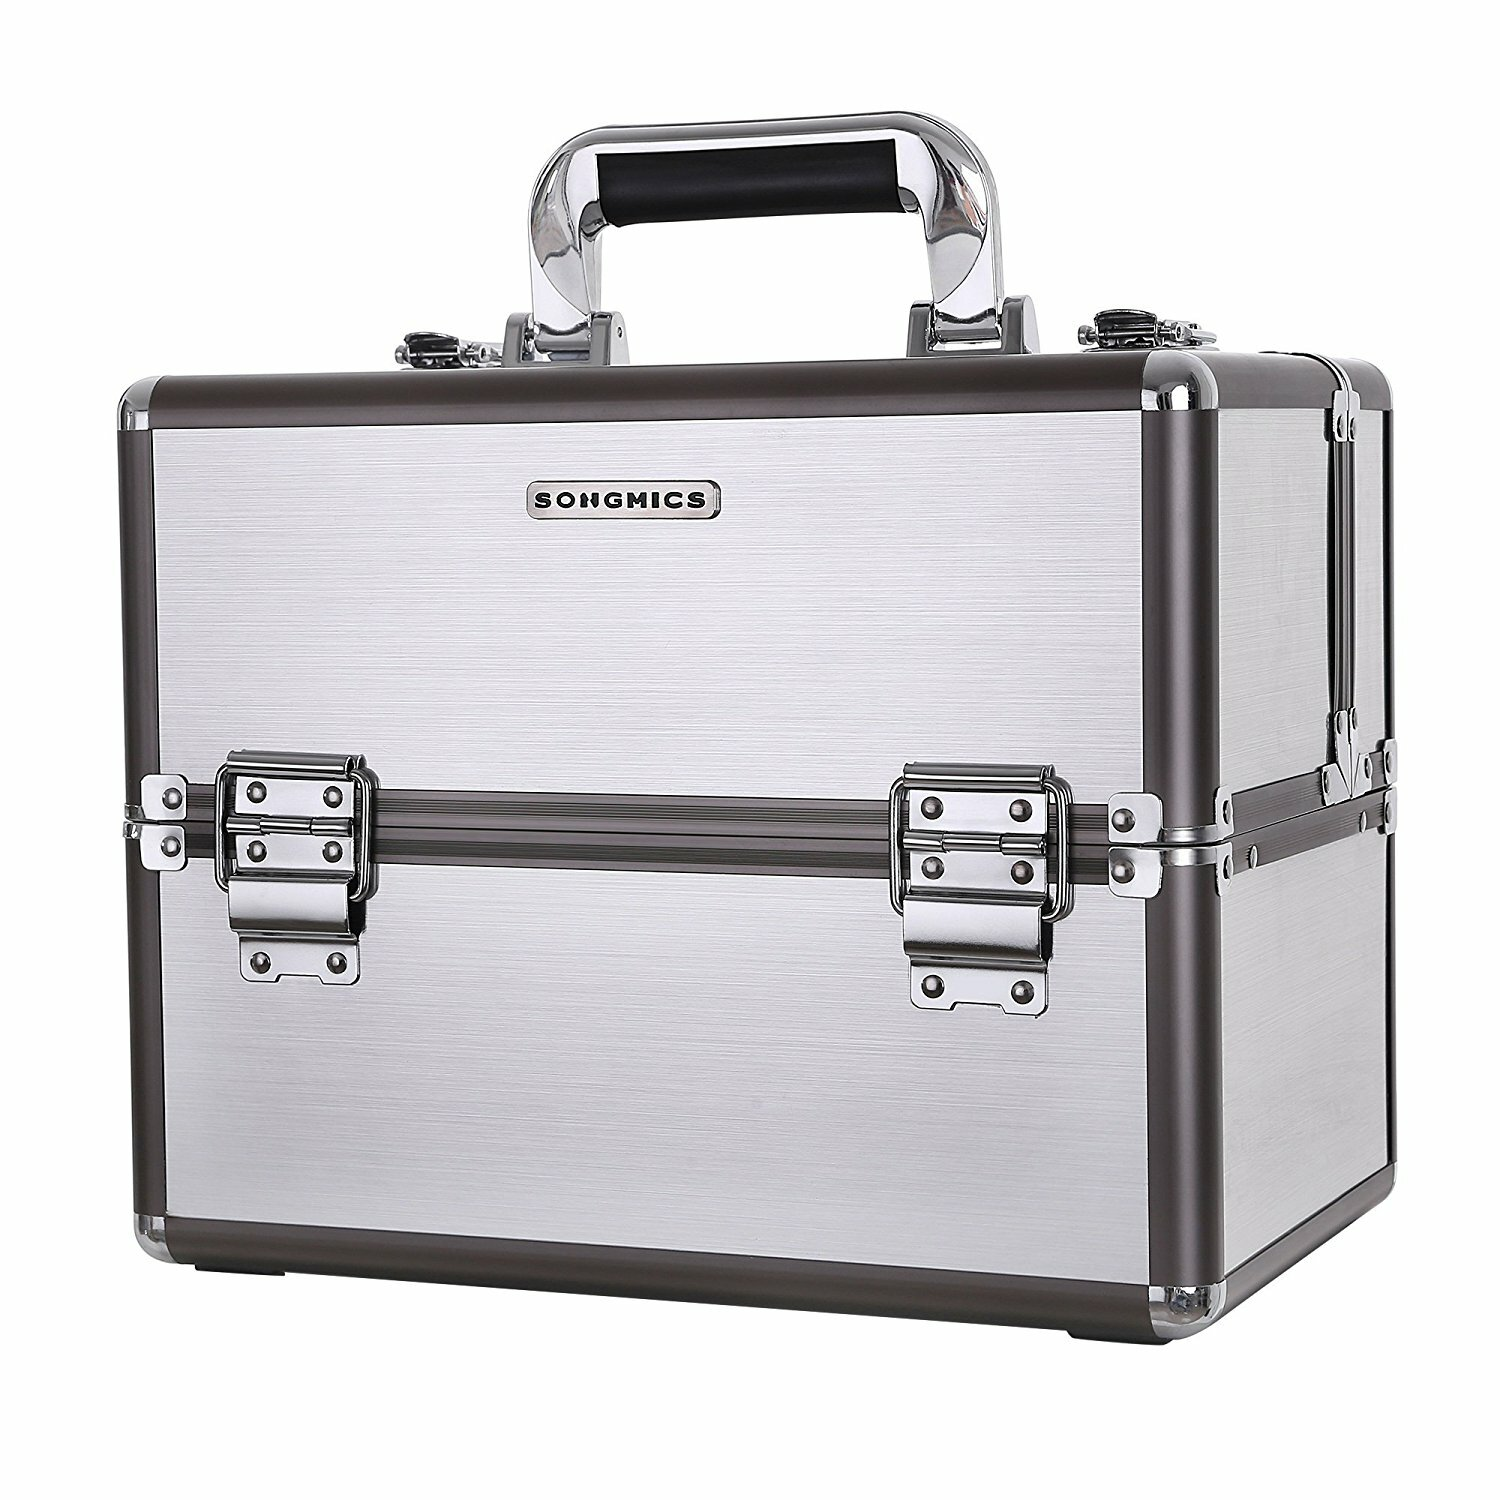 Songmics Professional Cosmetic And Makeup Travel Case & Reviews -